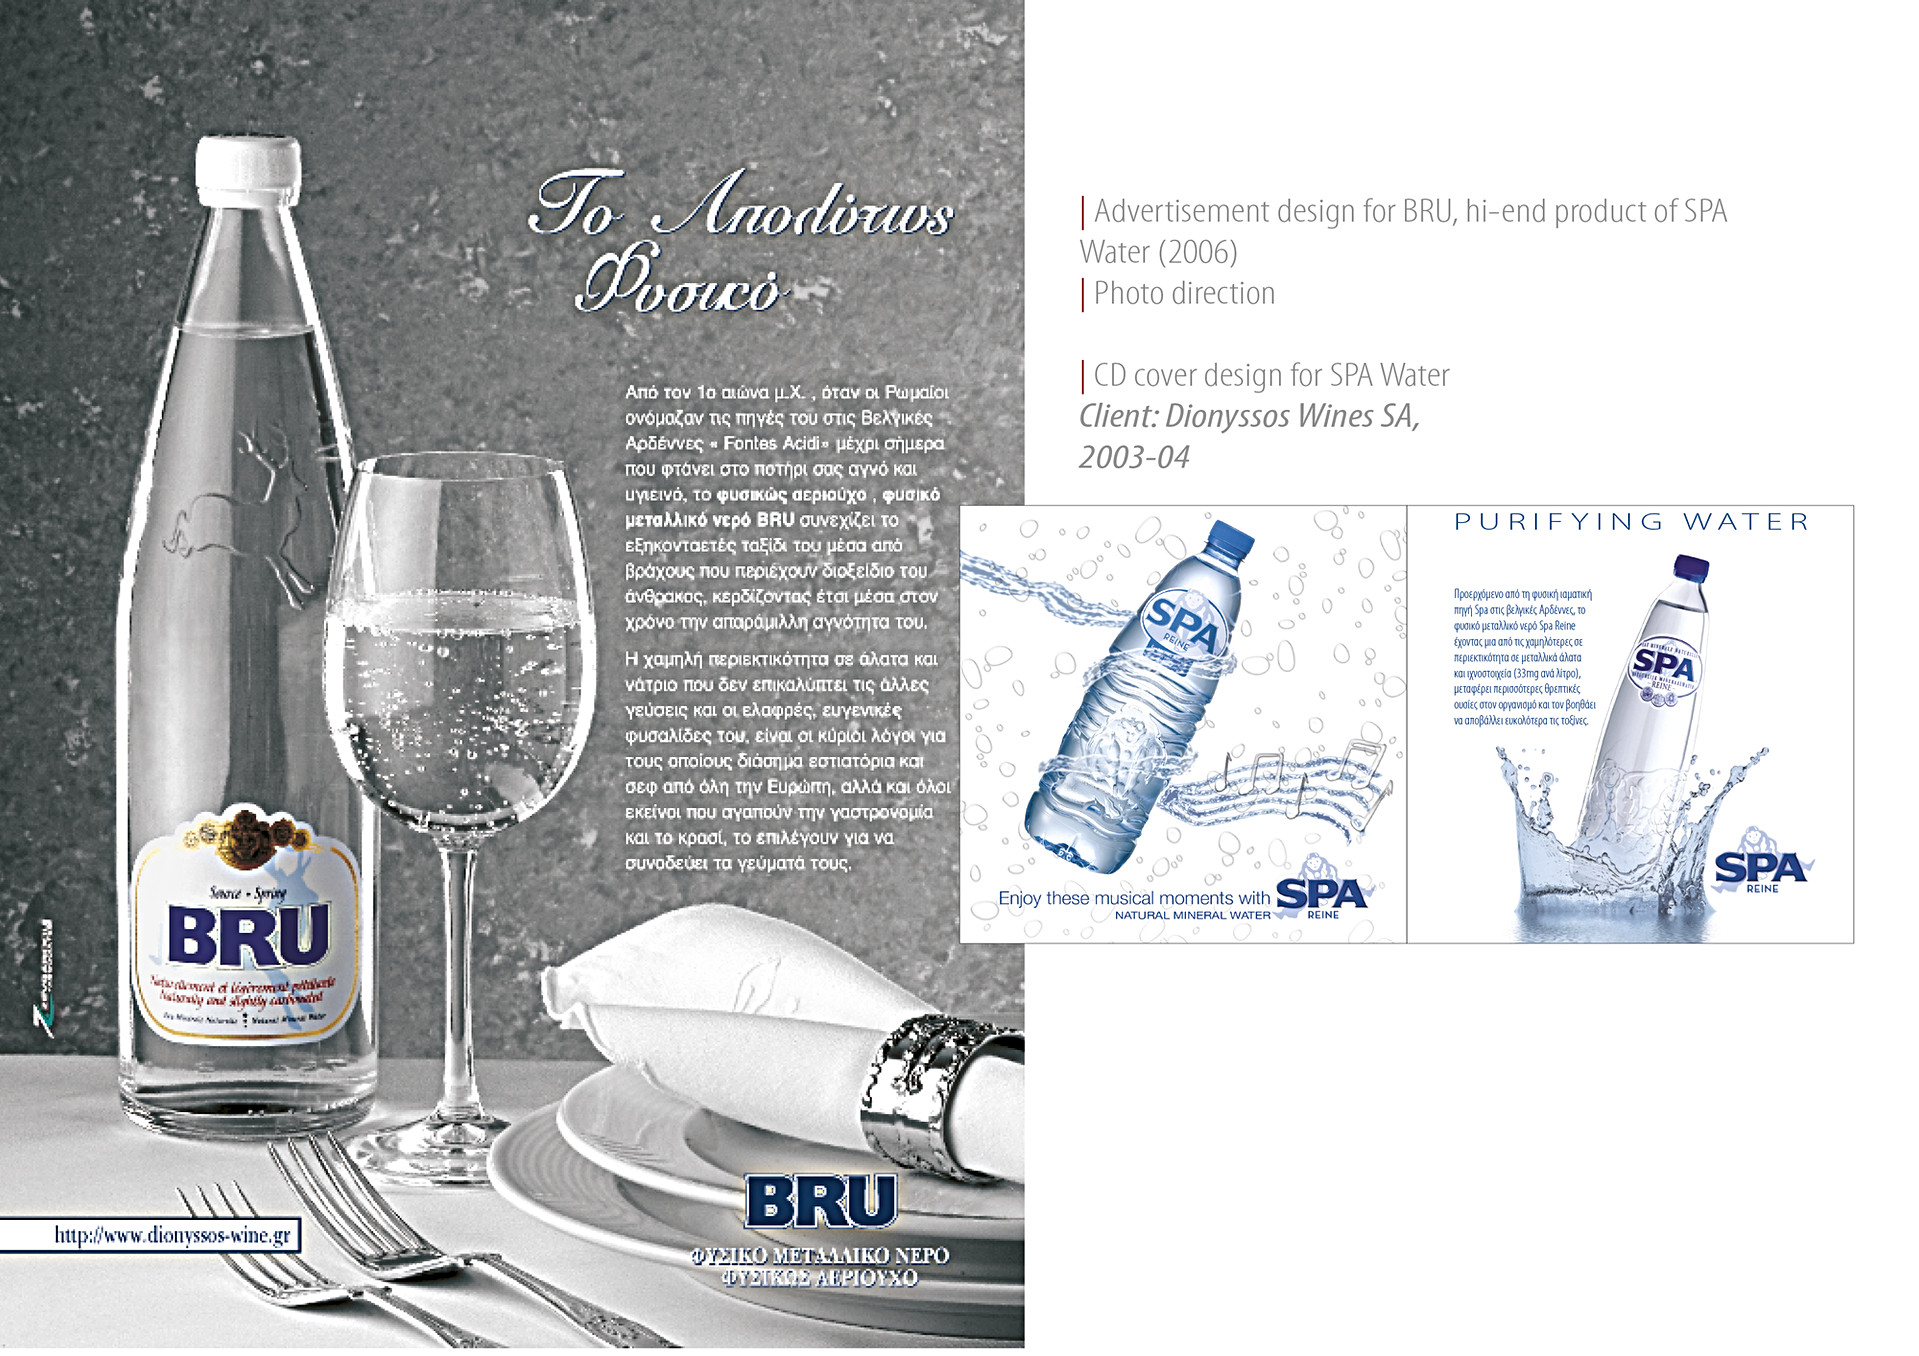 BRU and SPA mineral water advertisements and promotion kit